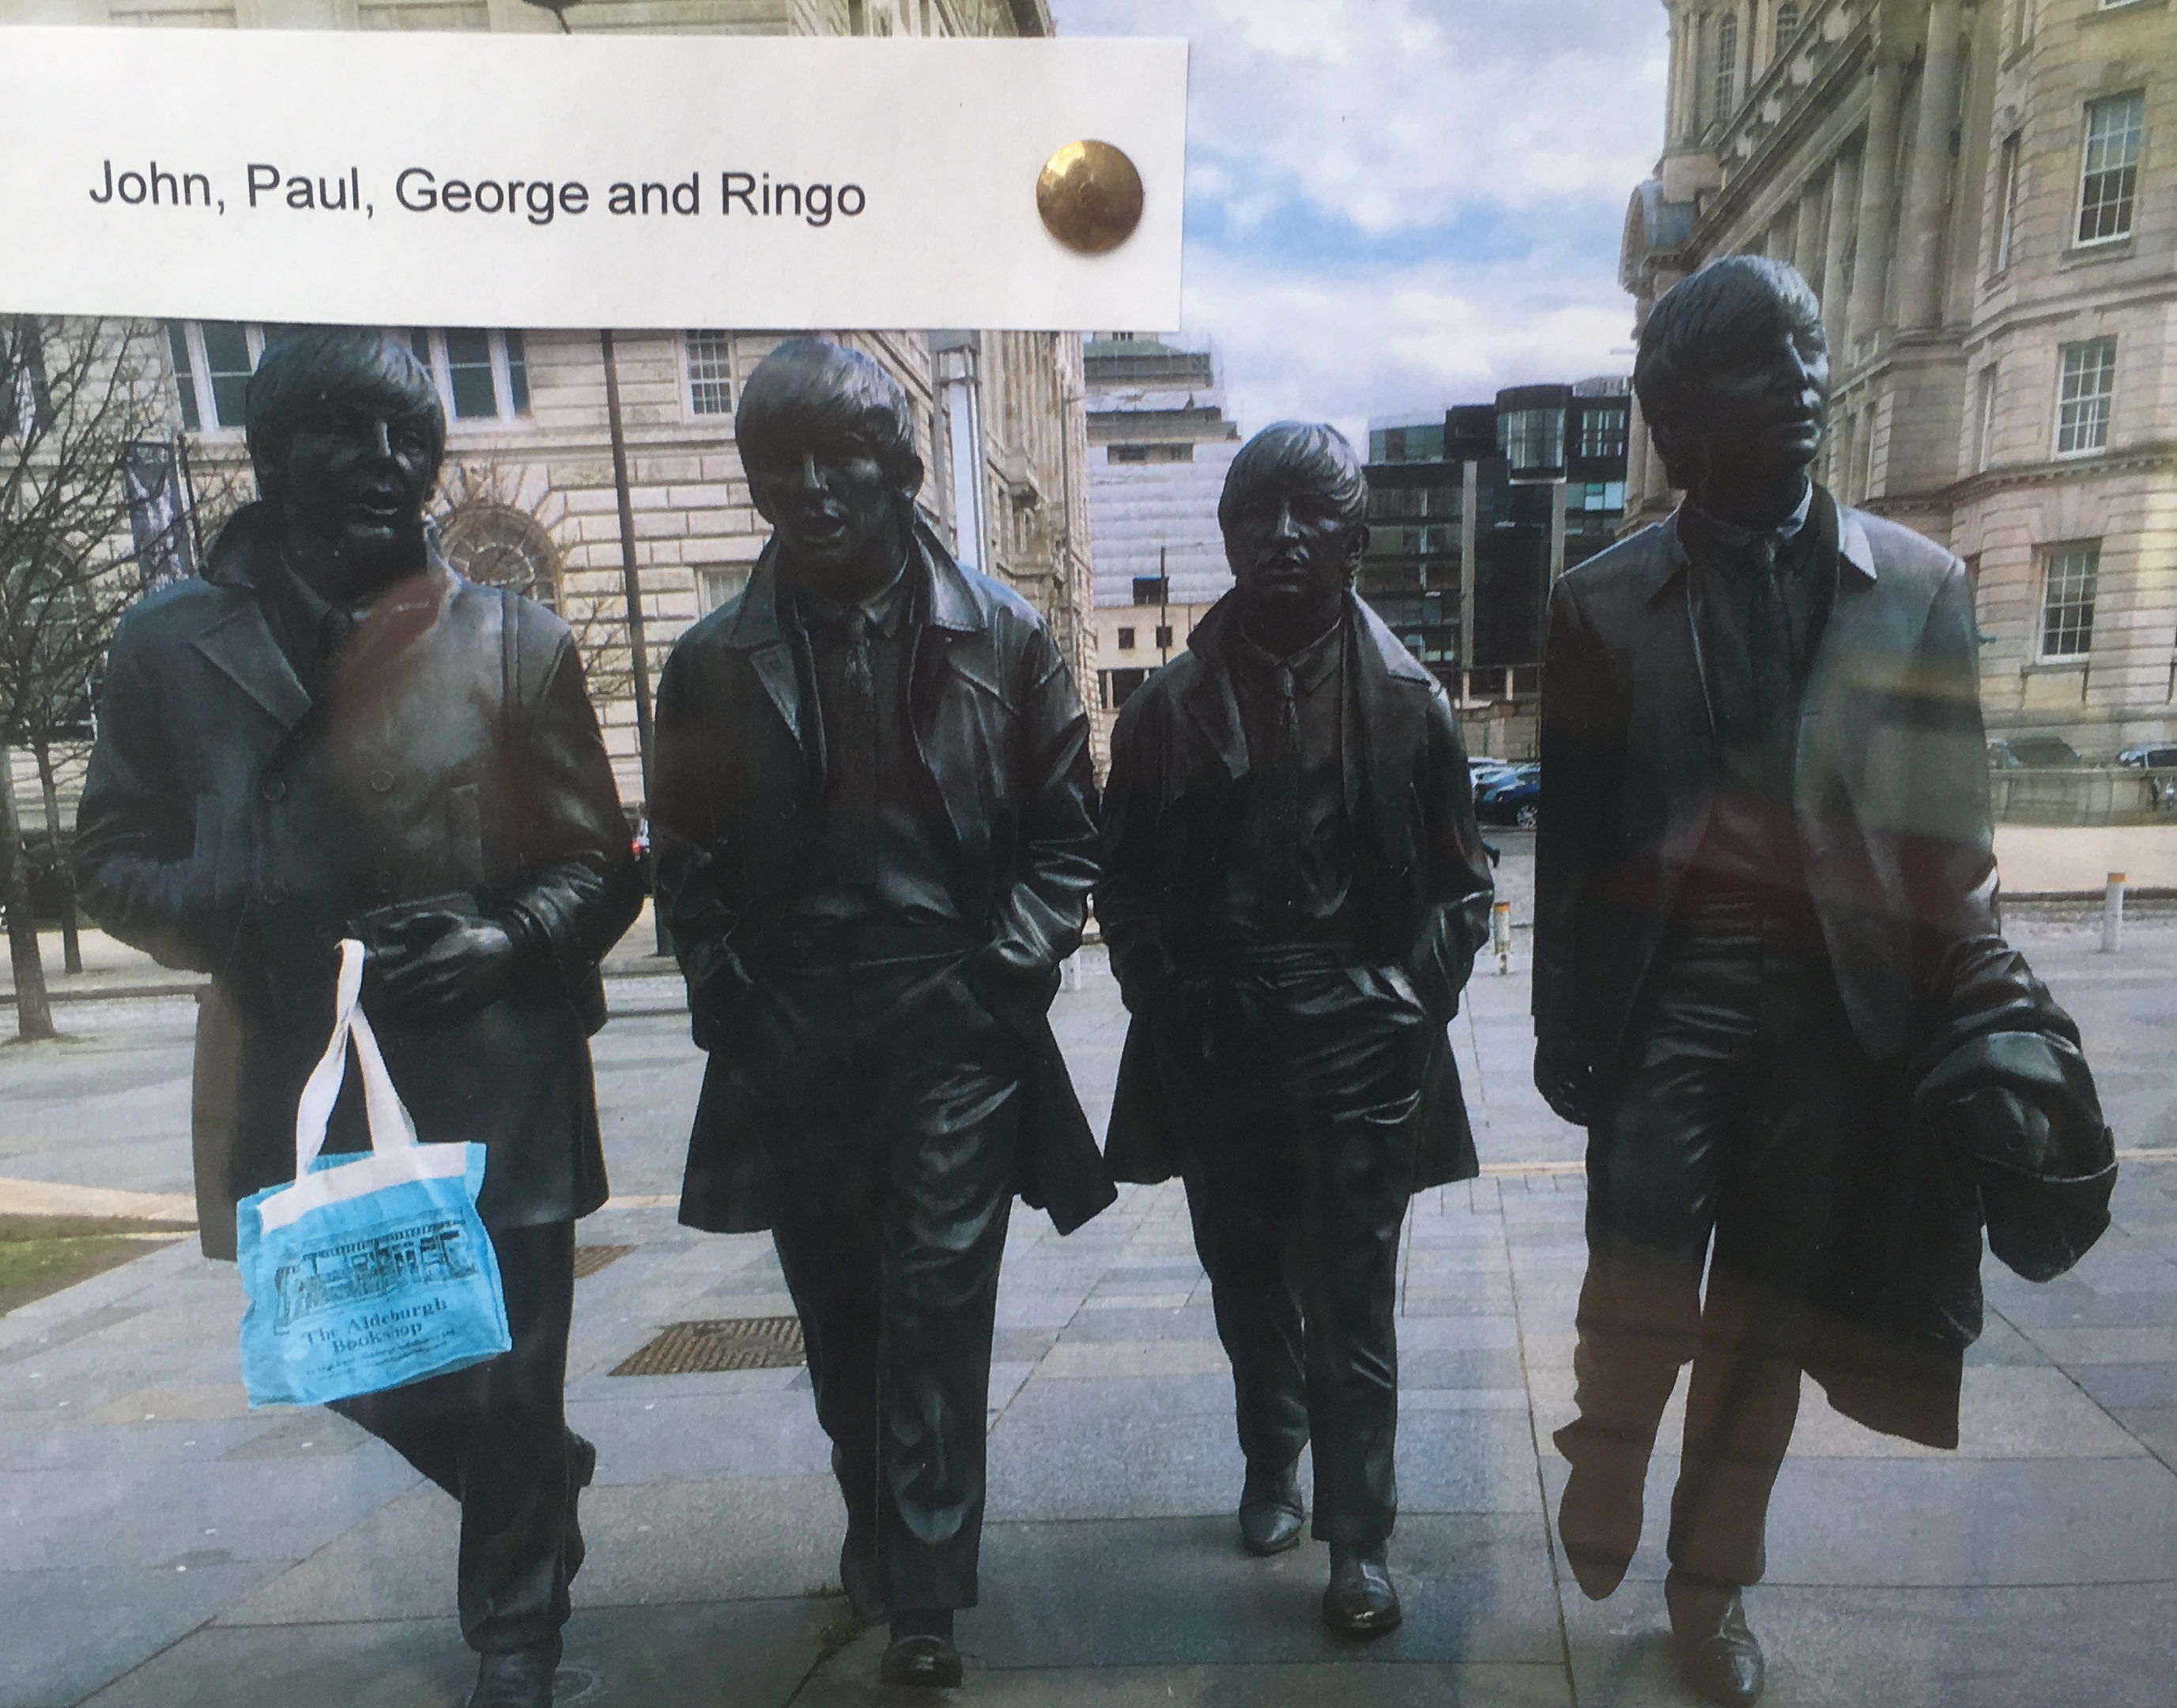 The Beatles statue in Liverpool, with Paul holding an Aldeburgh Bookshop tote bag